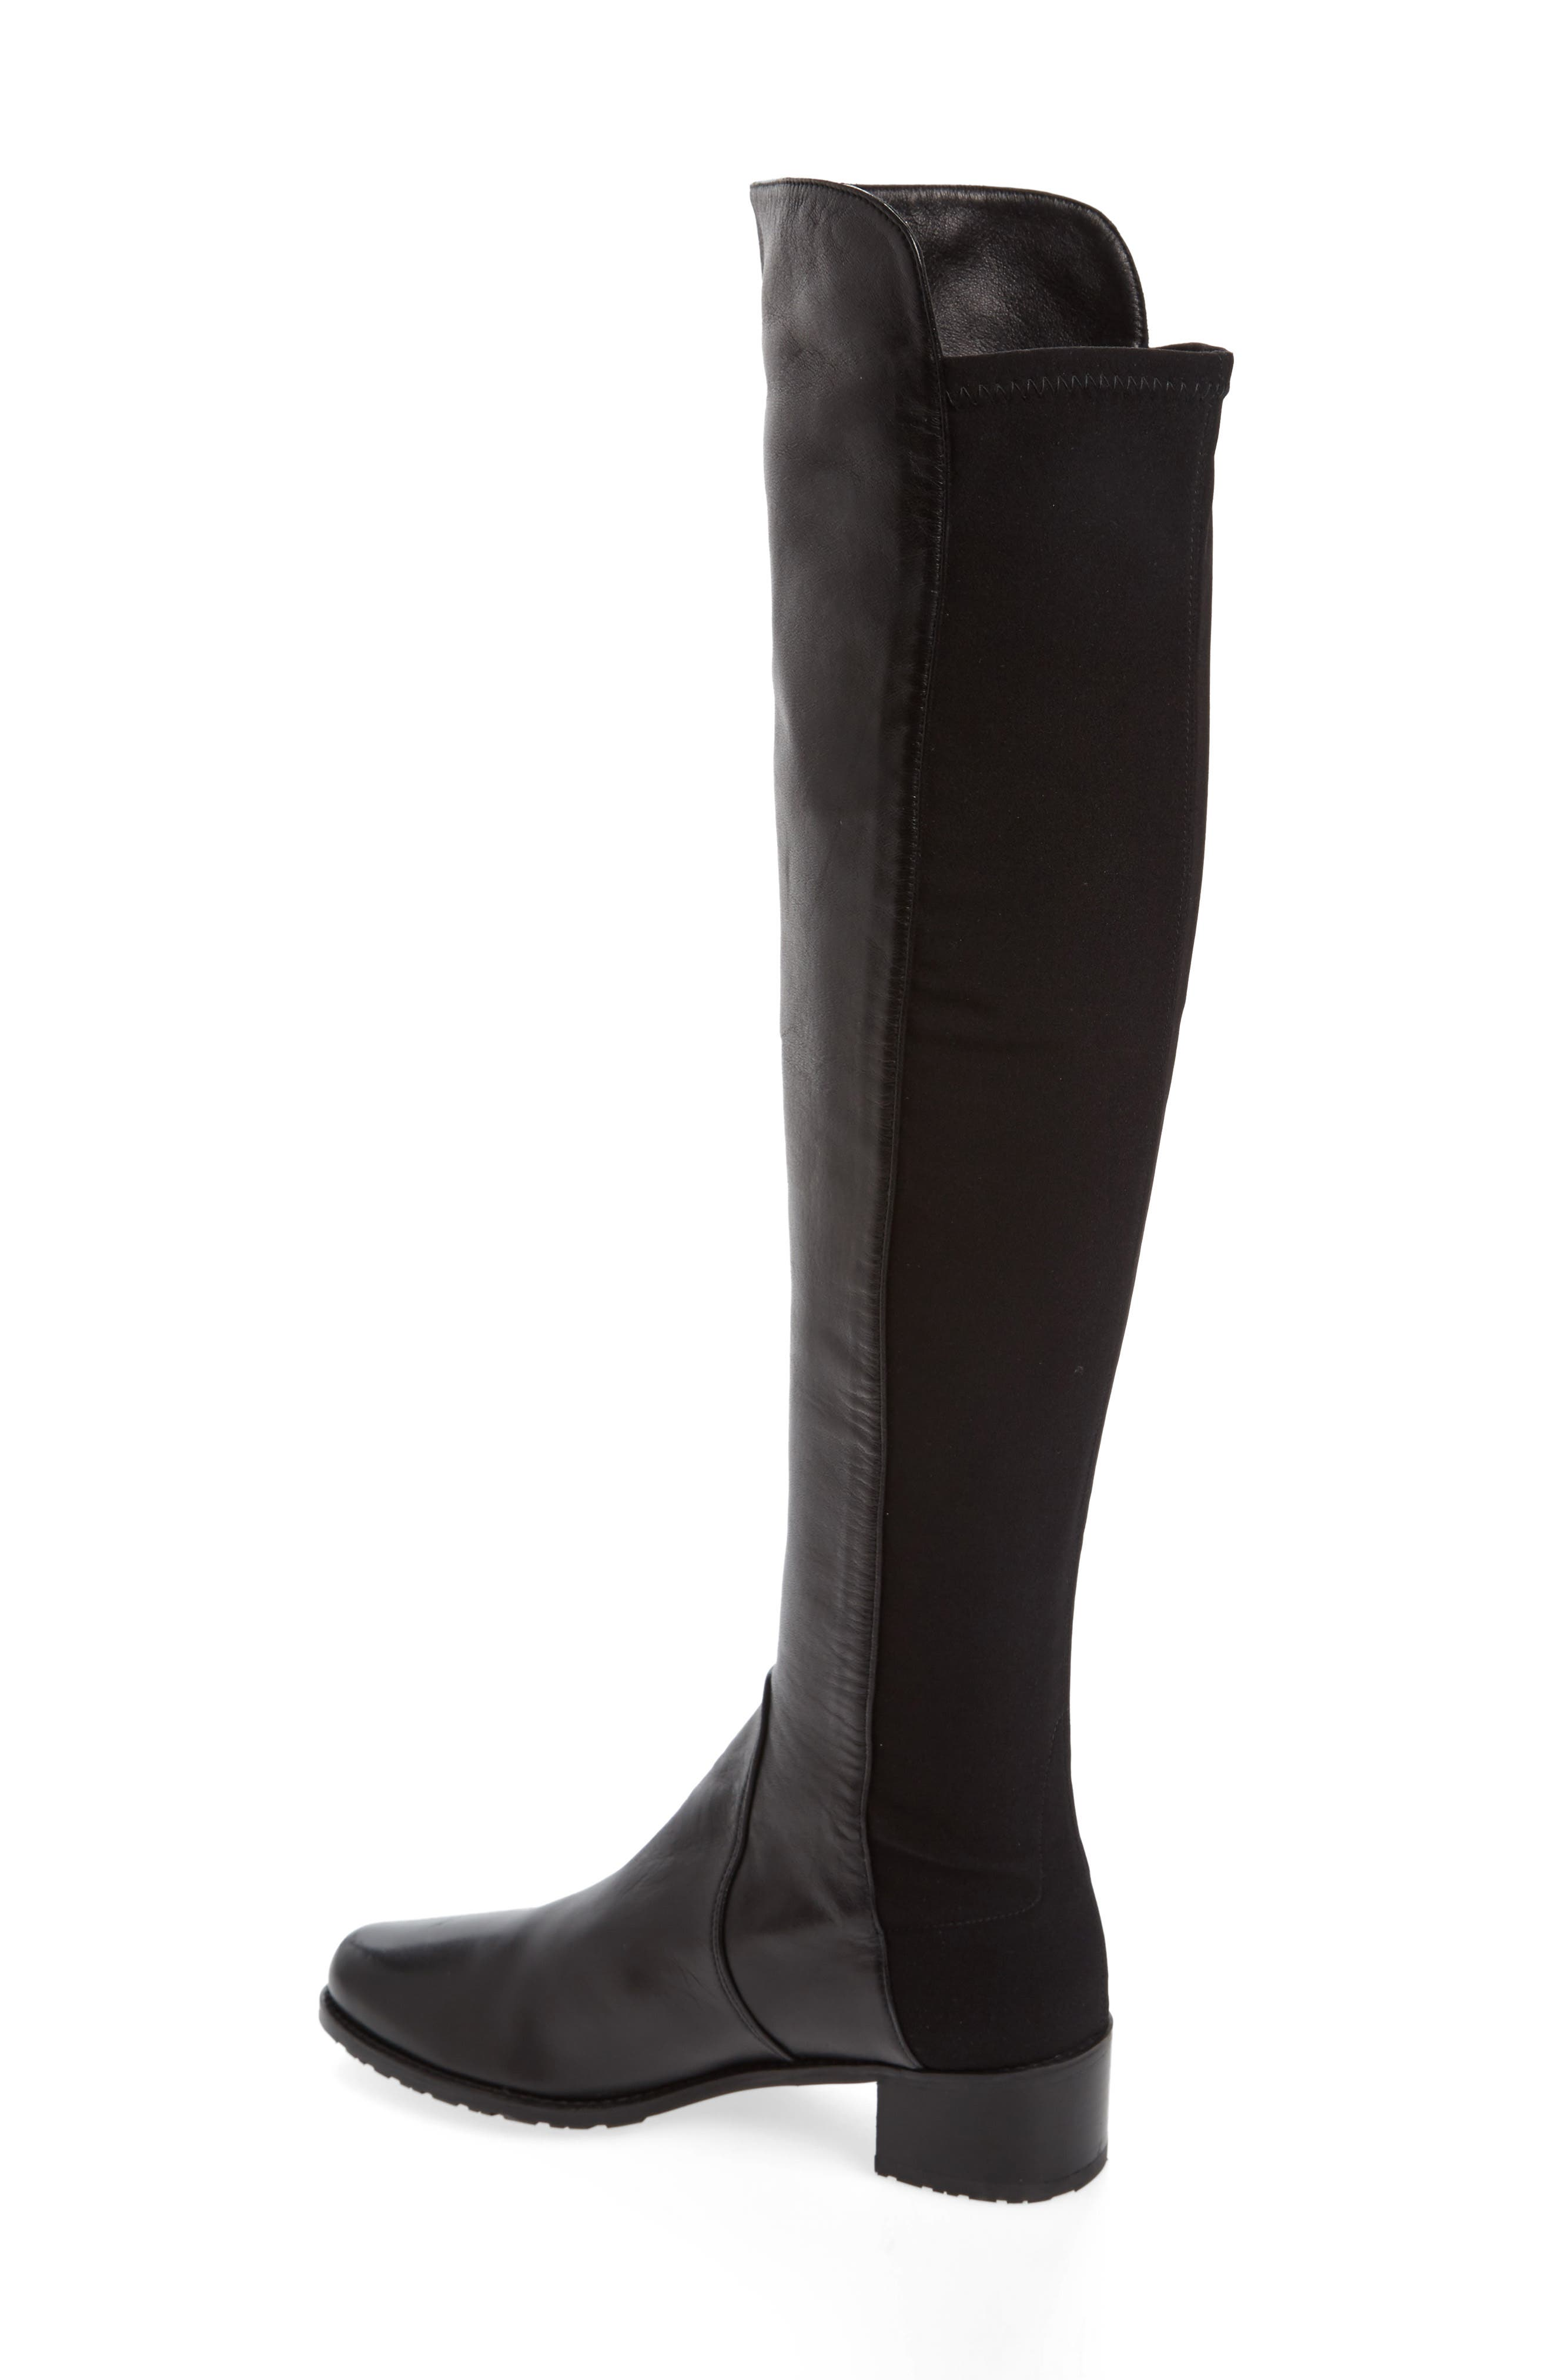 'Reserve' Over the Knee Boot,                             Alternate thumbnail 2, color,                             Black Nappa